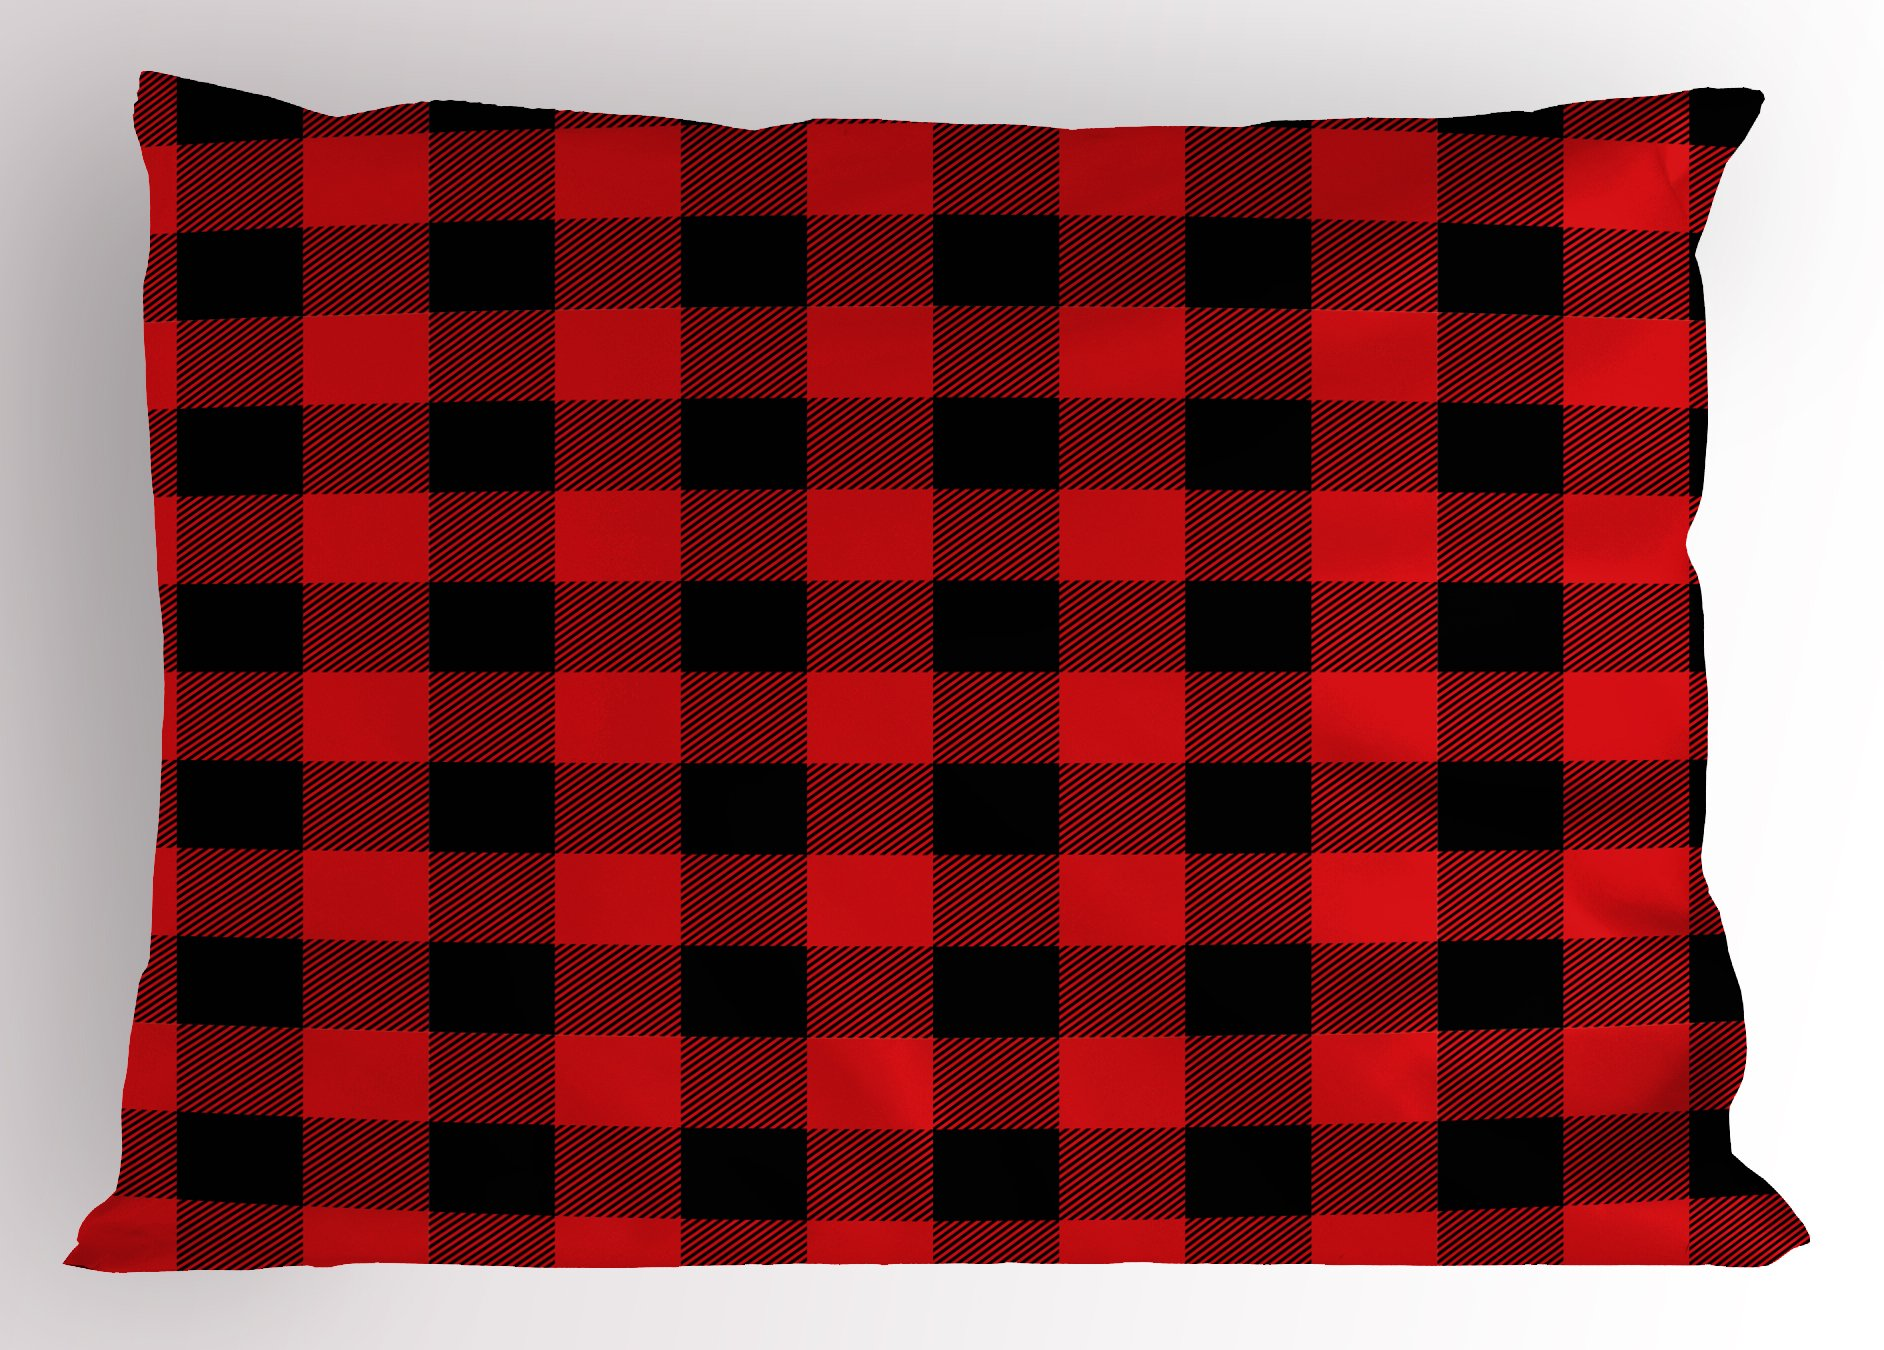 Ambesonne Plaid Pillow Sham, Lumberjack Fashion Buffalo Style Checks Pattern Retro Style with Grid Composition, Decorative Standard King Size Printed Pillowcase, 36 X 20 inches, Scarlet Black